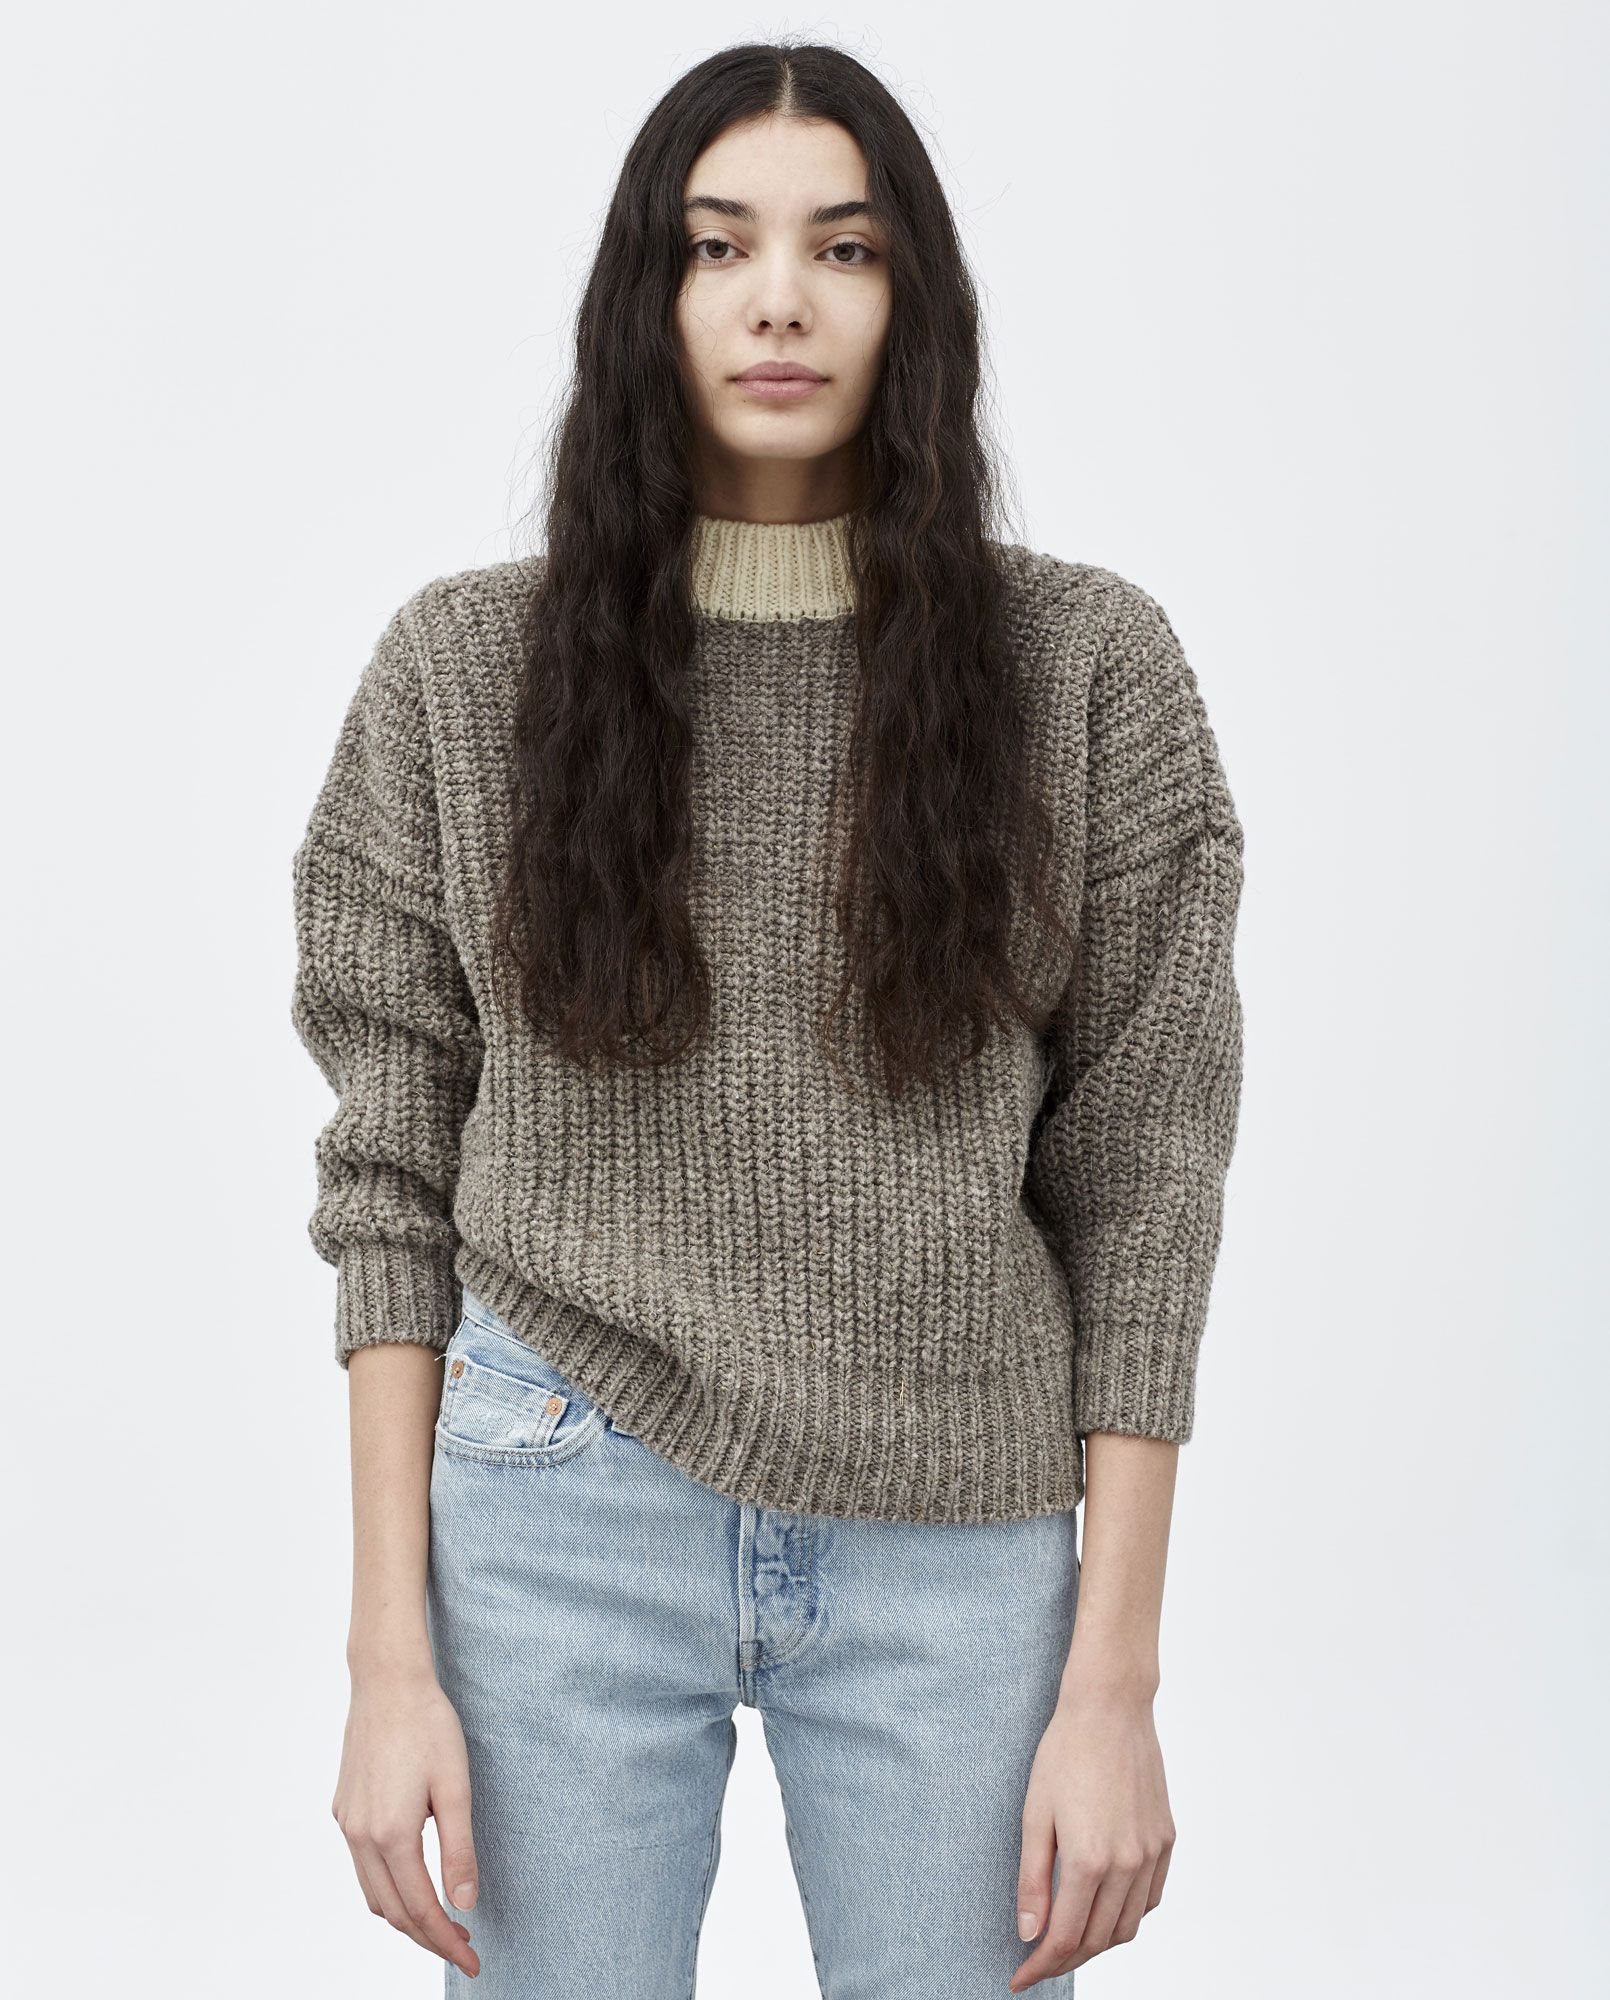 daa538eef52 jumper woman no19 oversized natural | closet in 2019 | Jumpers for ...